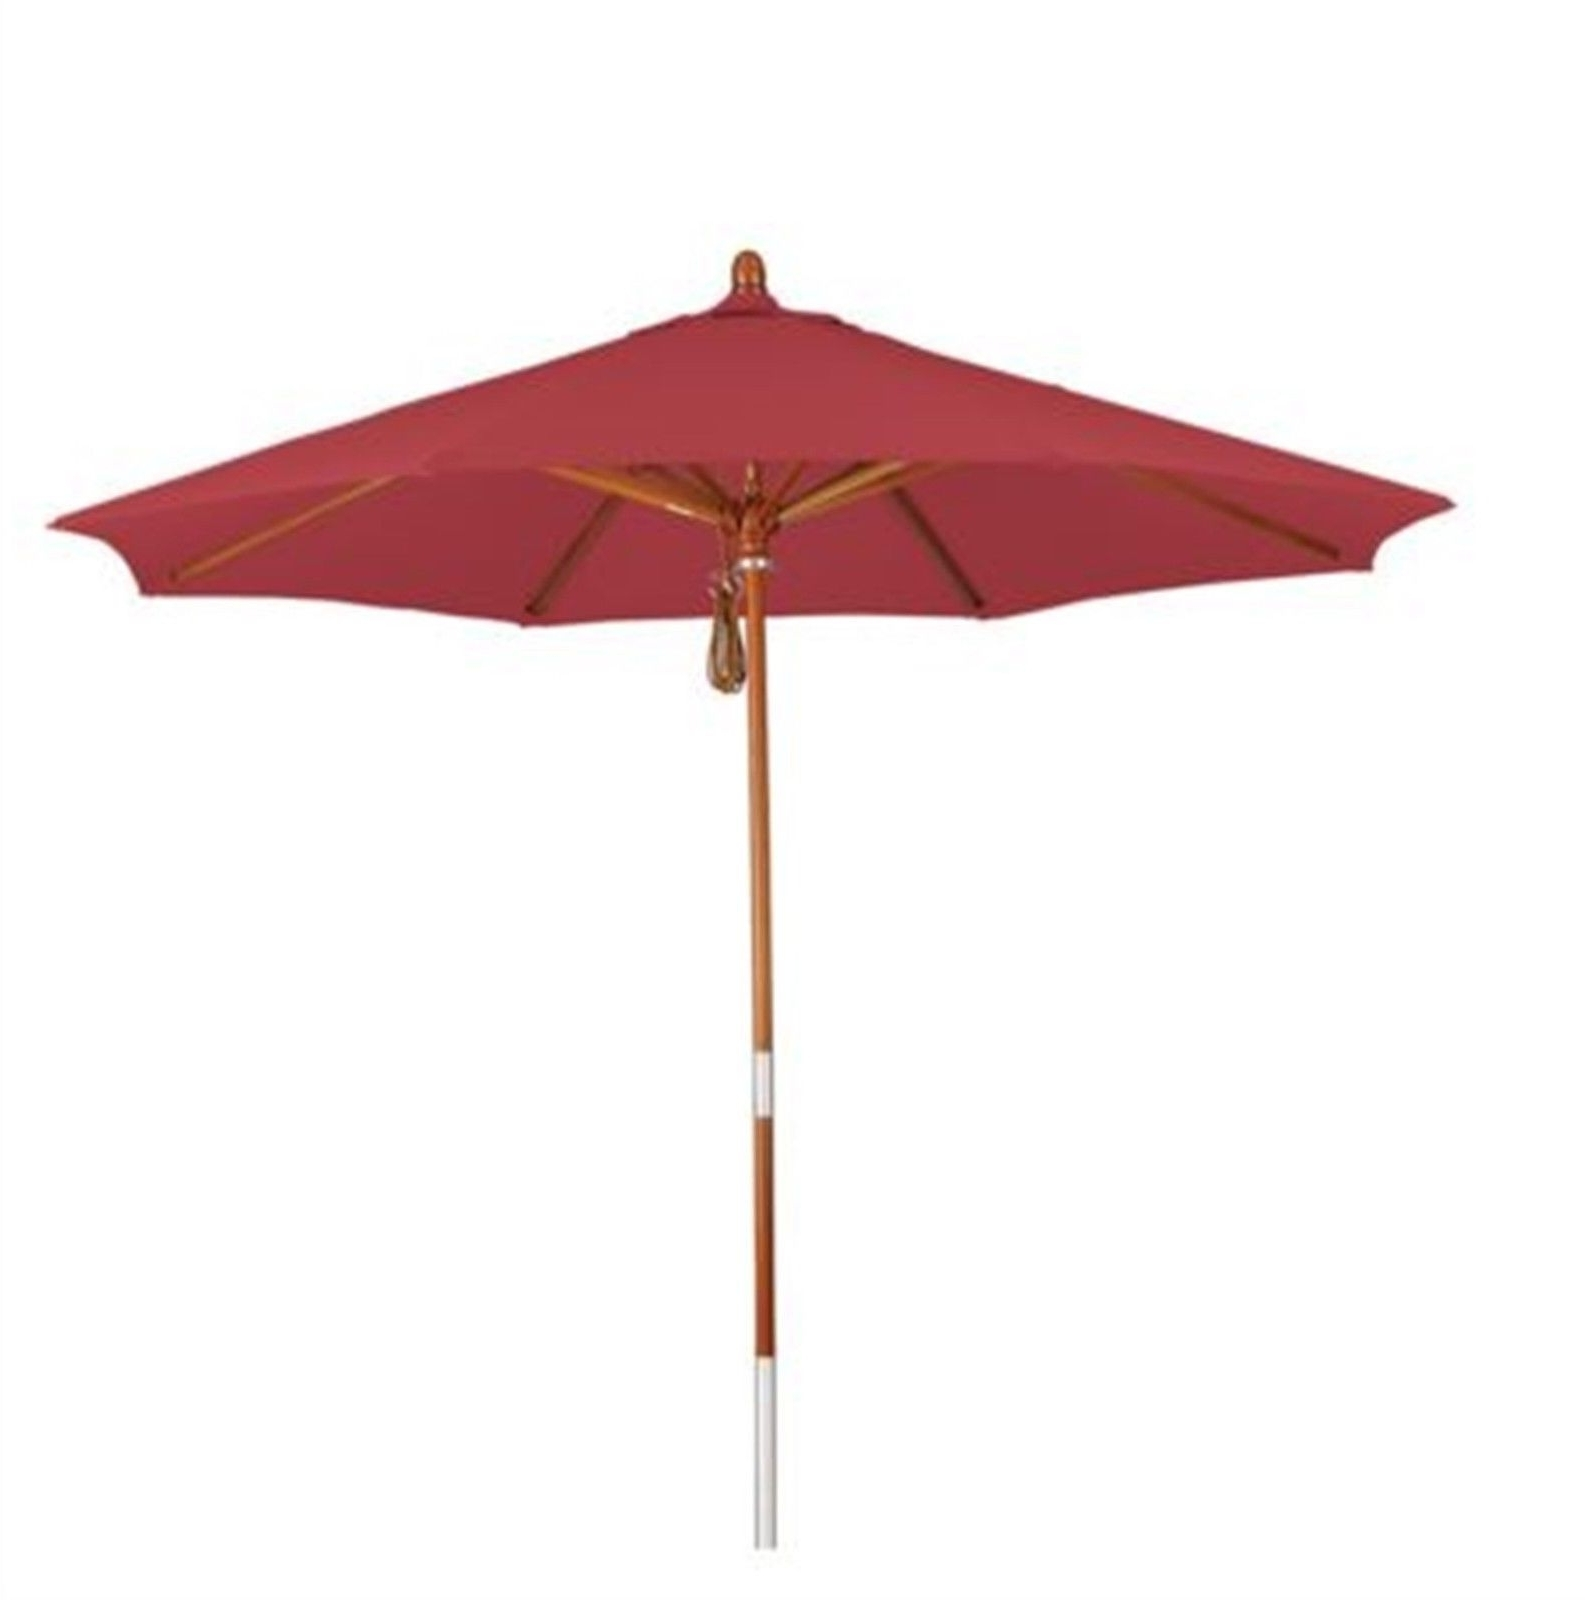 Phat Tommy Red Market Patio Umbrella Home Decorative Furniture With Regard To Current Red Patio Umbrellas (View 10 of 20)